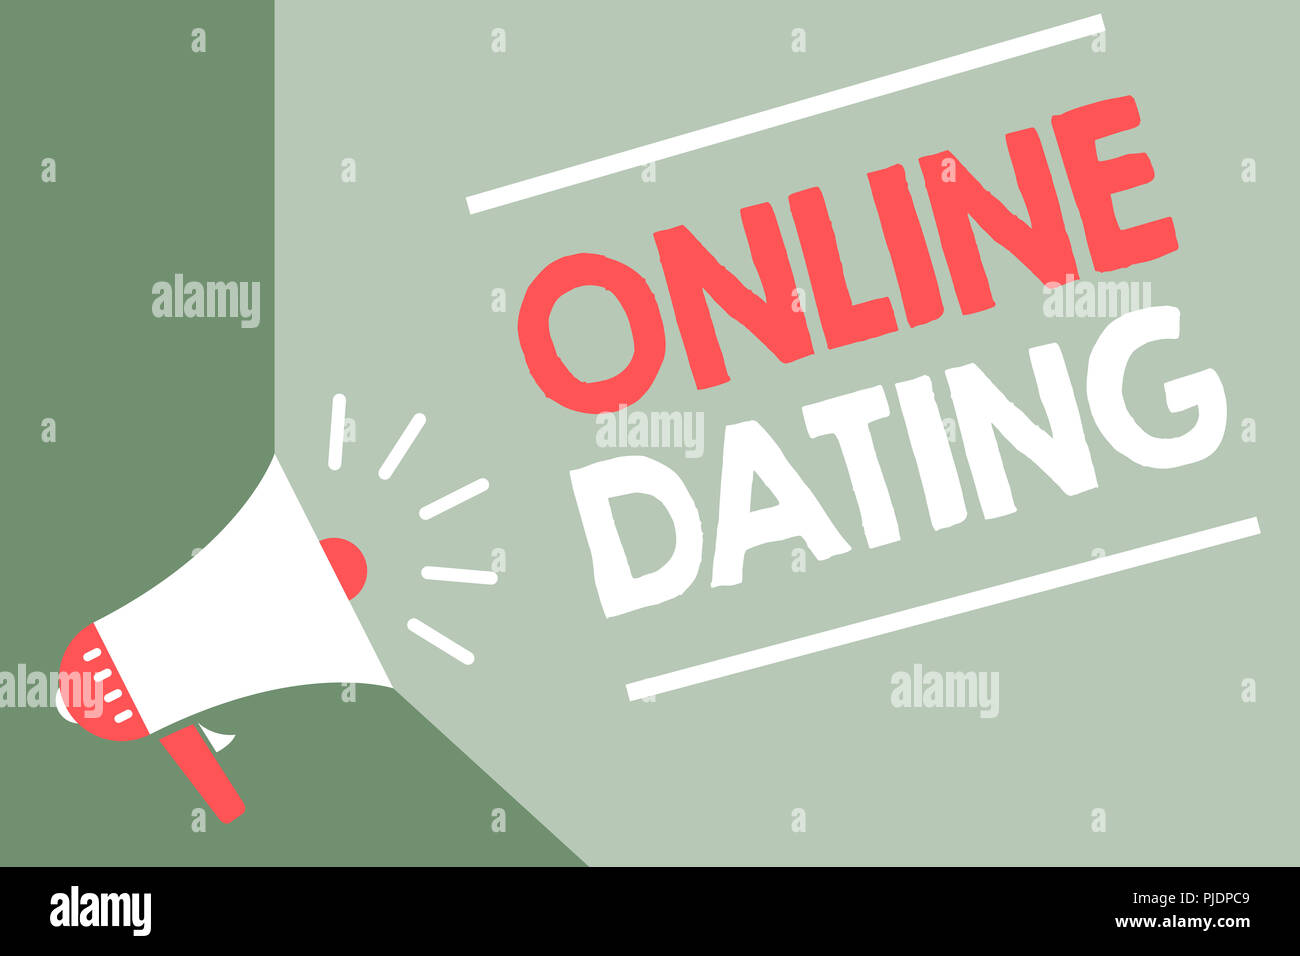 Meaning dating online